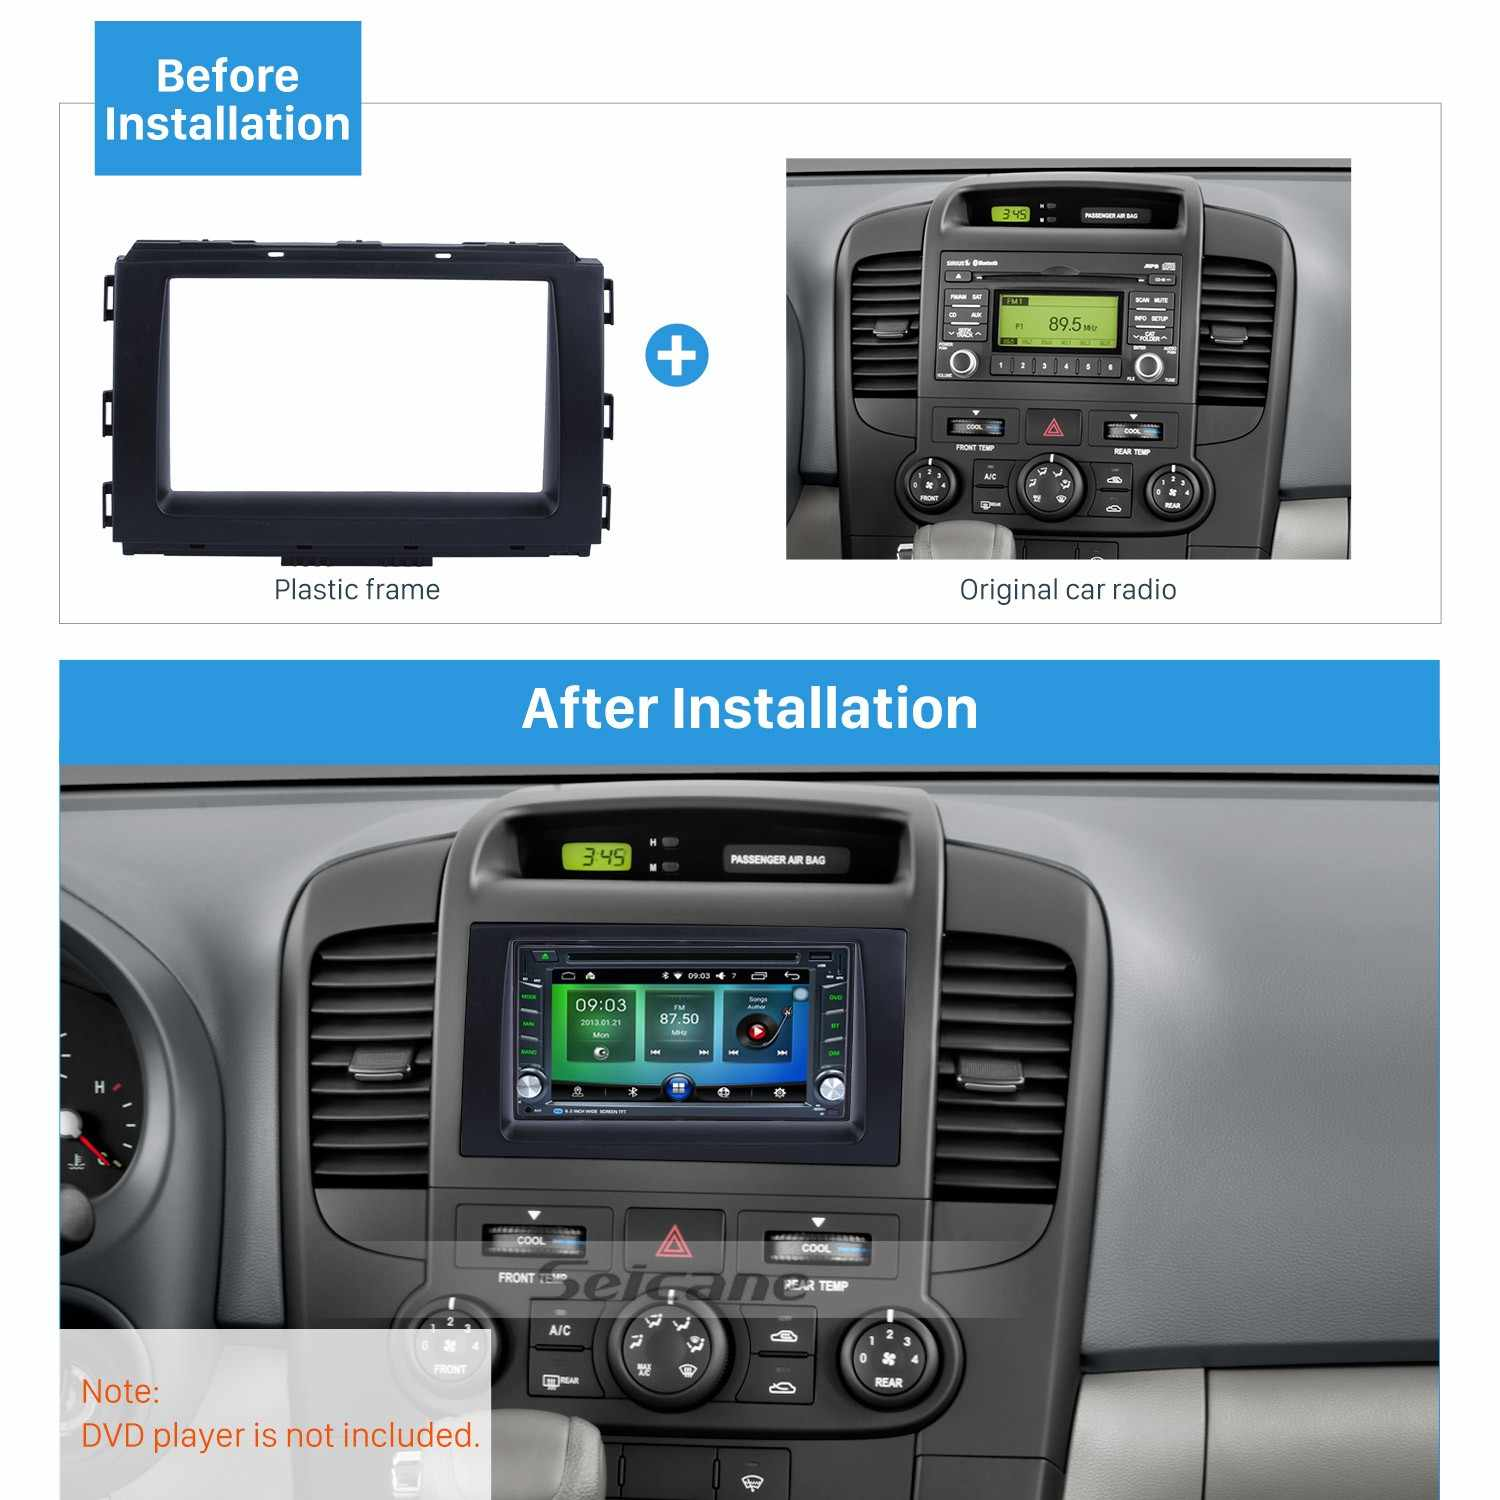 seicane black 2din car radio fascia frame refitting plate panel dashboard for 2014 kia carnival sedona [ 1500 x 1500 Pixel ]